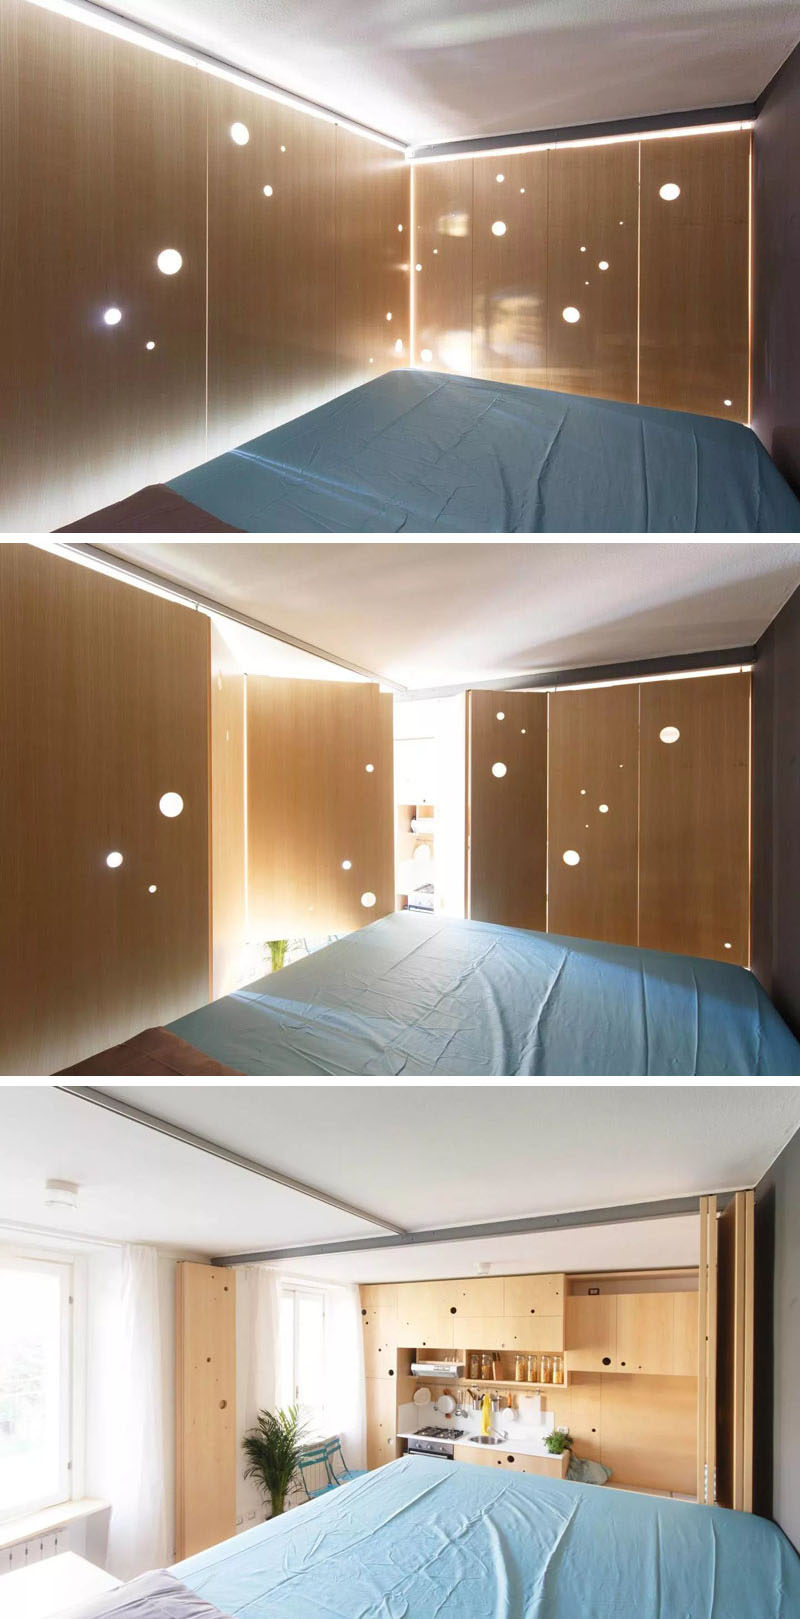 This tiny apartment can close off the bedroom when needed.